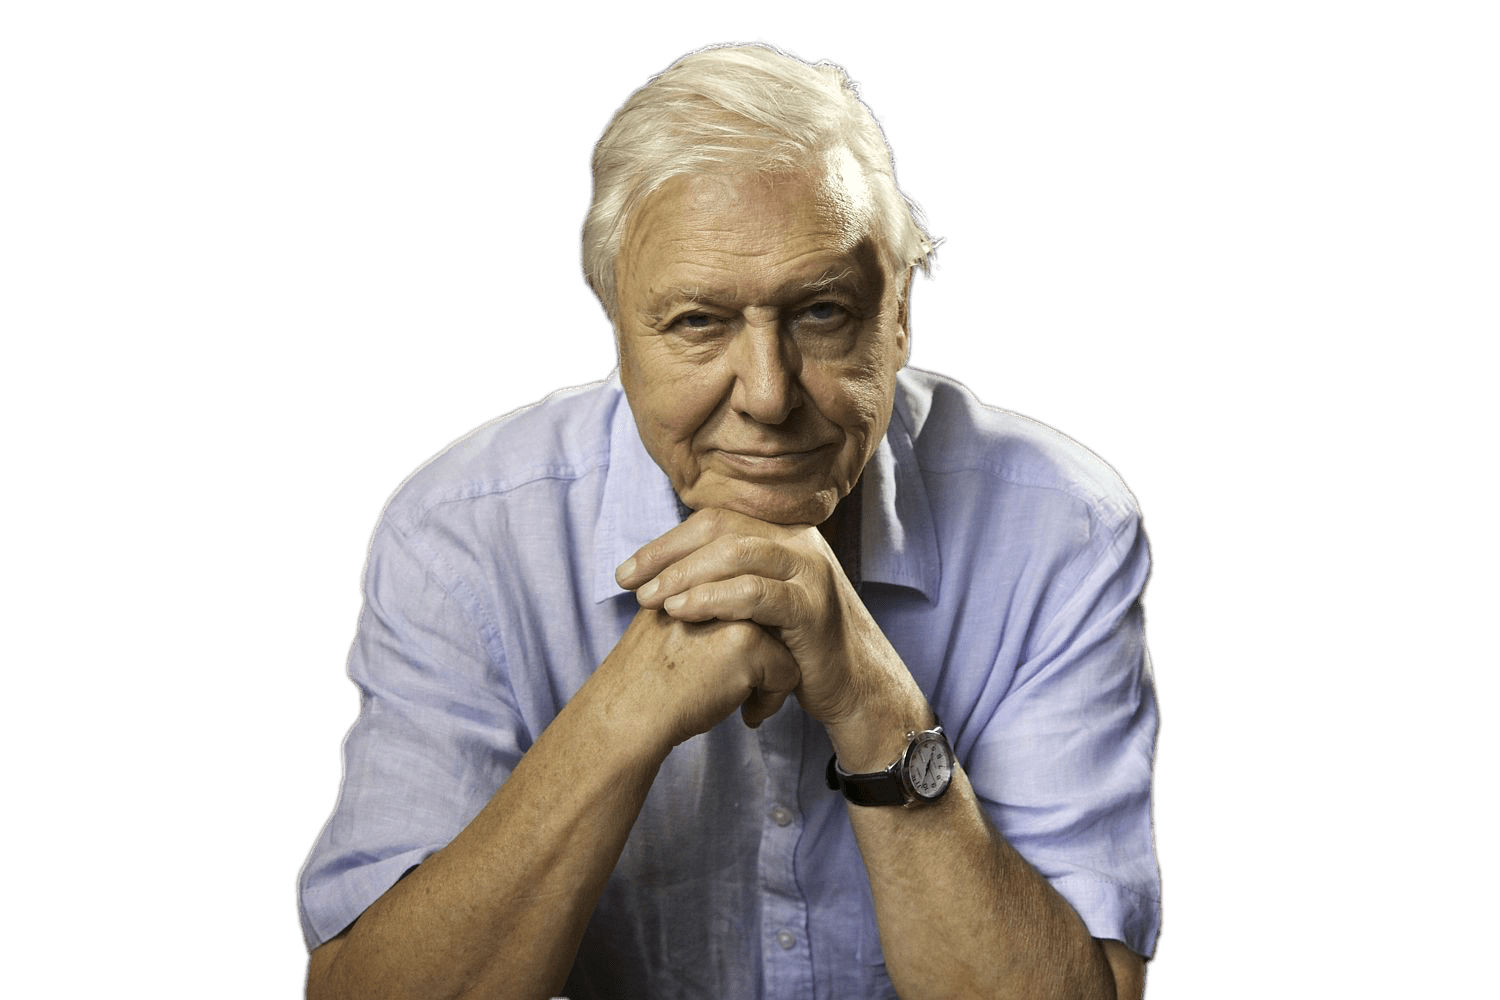 David Attenborough Sitting PNG Image